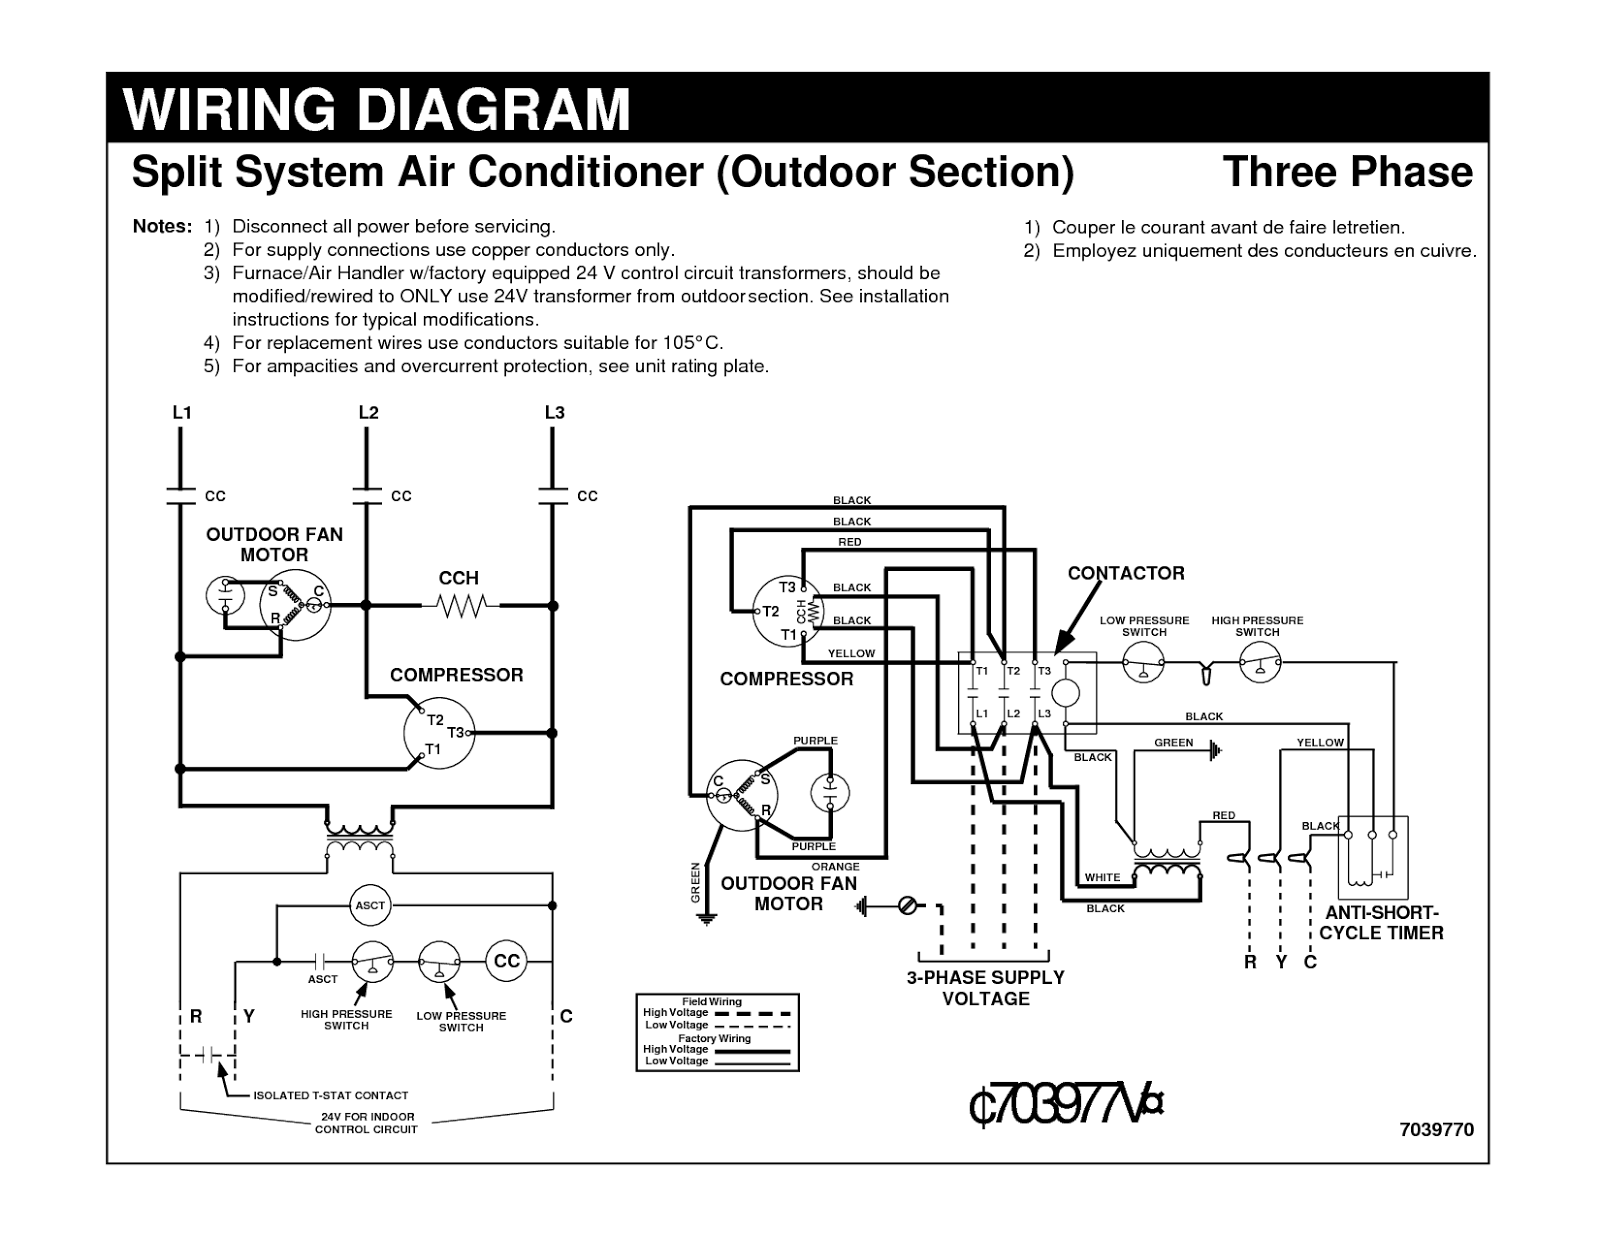 wiring+diagram+in+the+user+manual york rooftop unit wiring diagram york air handler wiring diagram  at mifinder.co